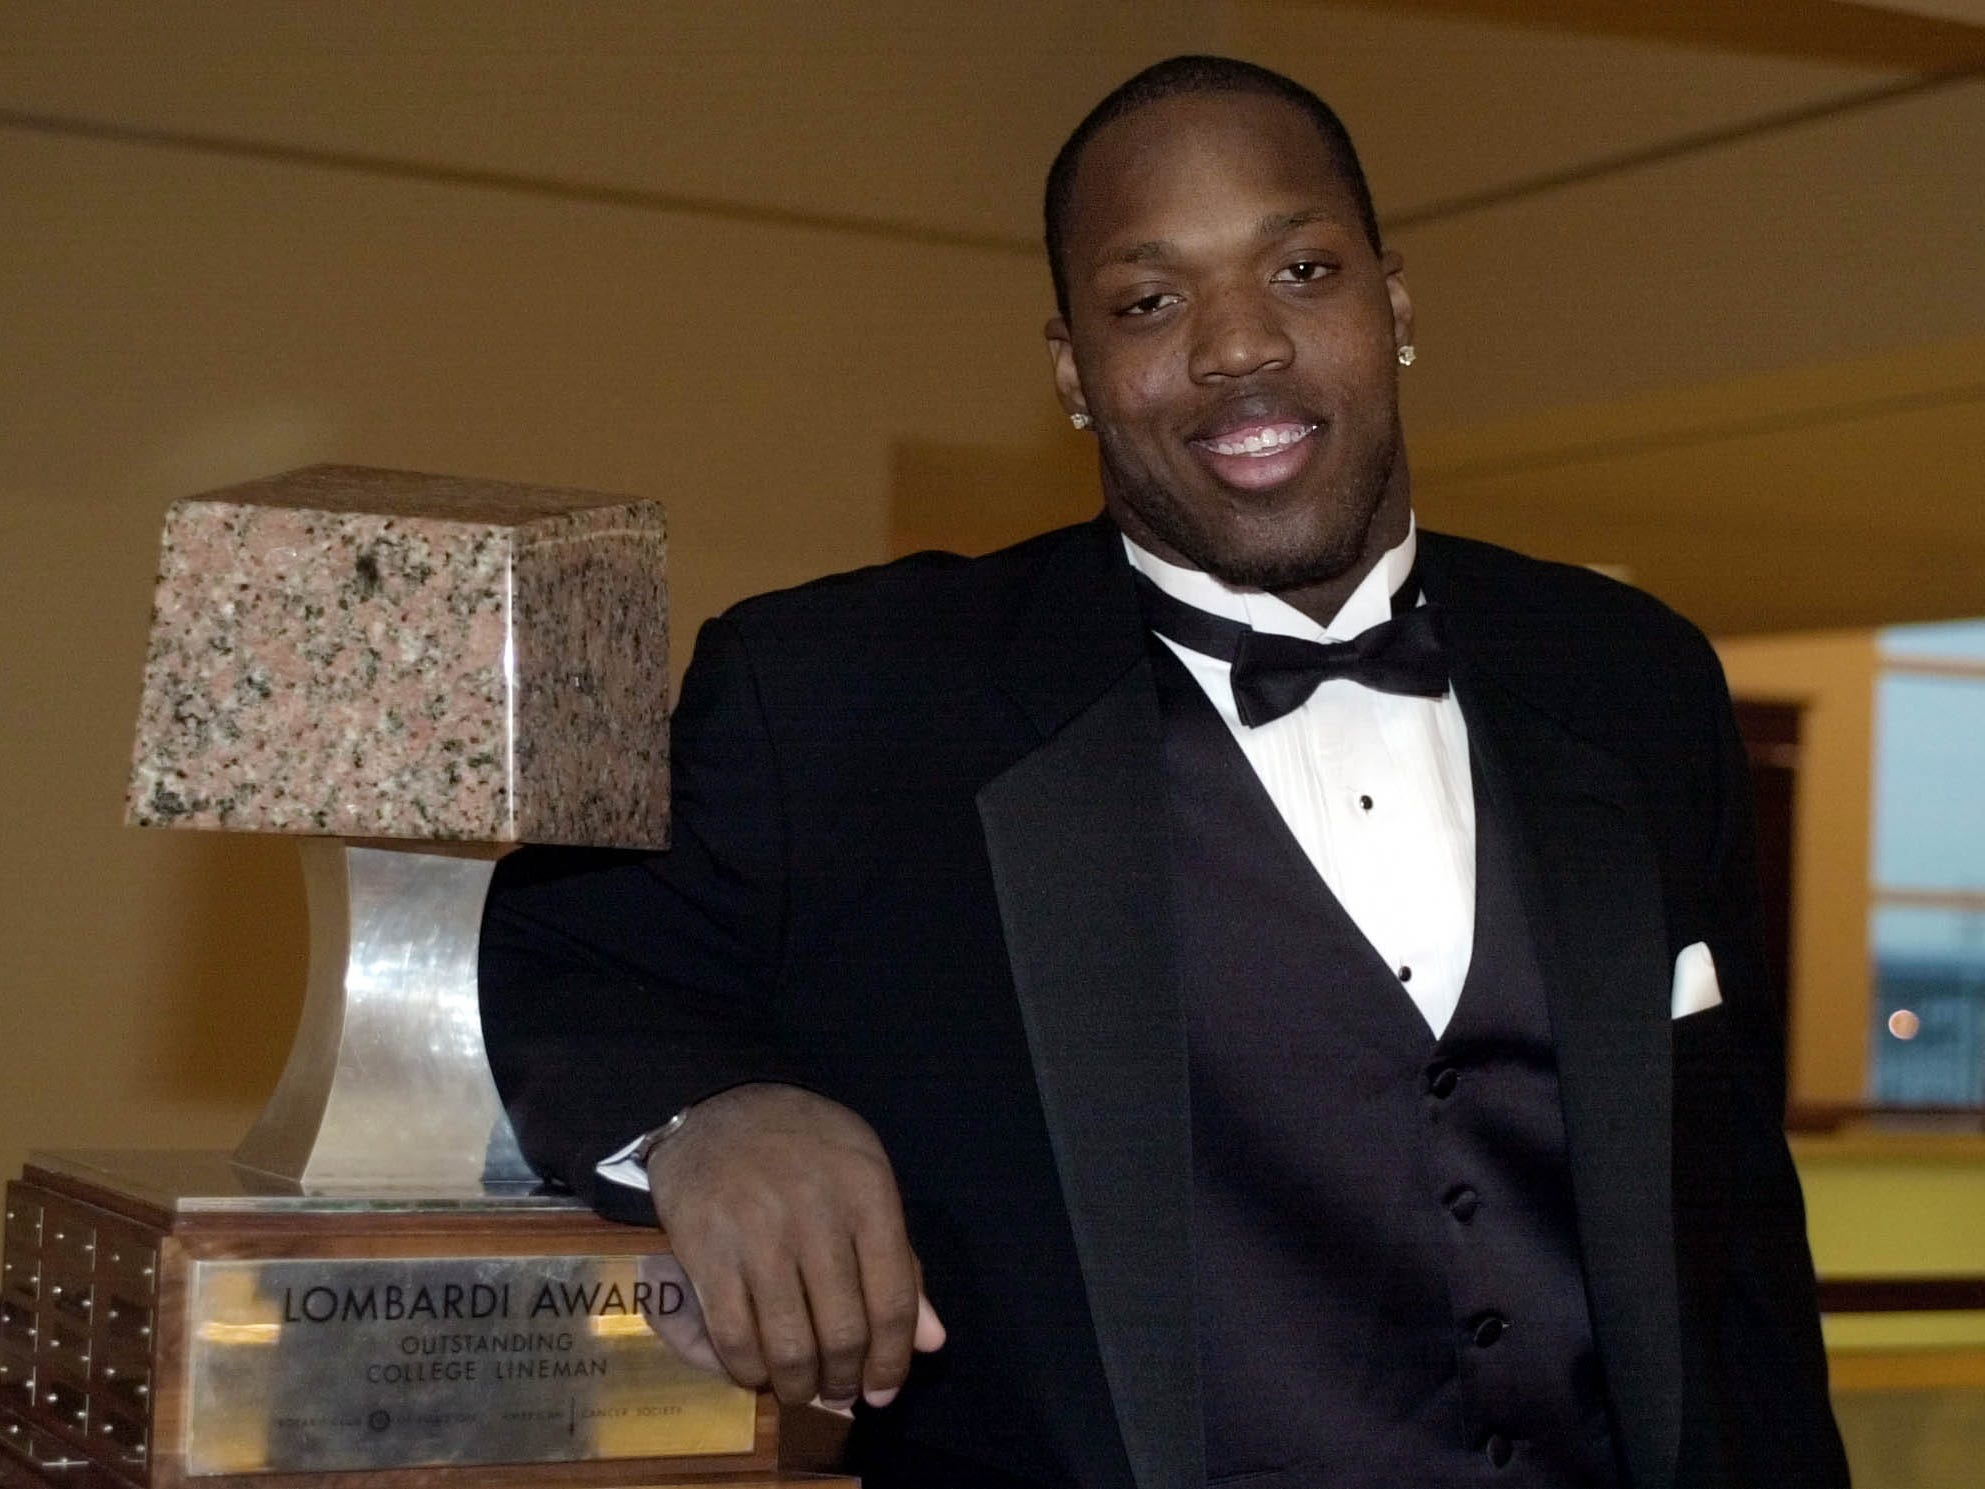 Arizona State defensive end Terrell Suggs poses with the Lombardi Award prior to the award presentation Wednesday, Dec. 11, 2002, in Houston. Suggs won the award, given to the nation's top collegiate lineman, Wednesday night.